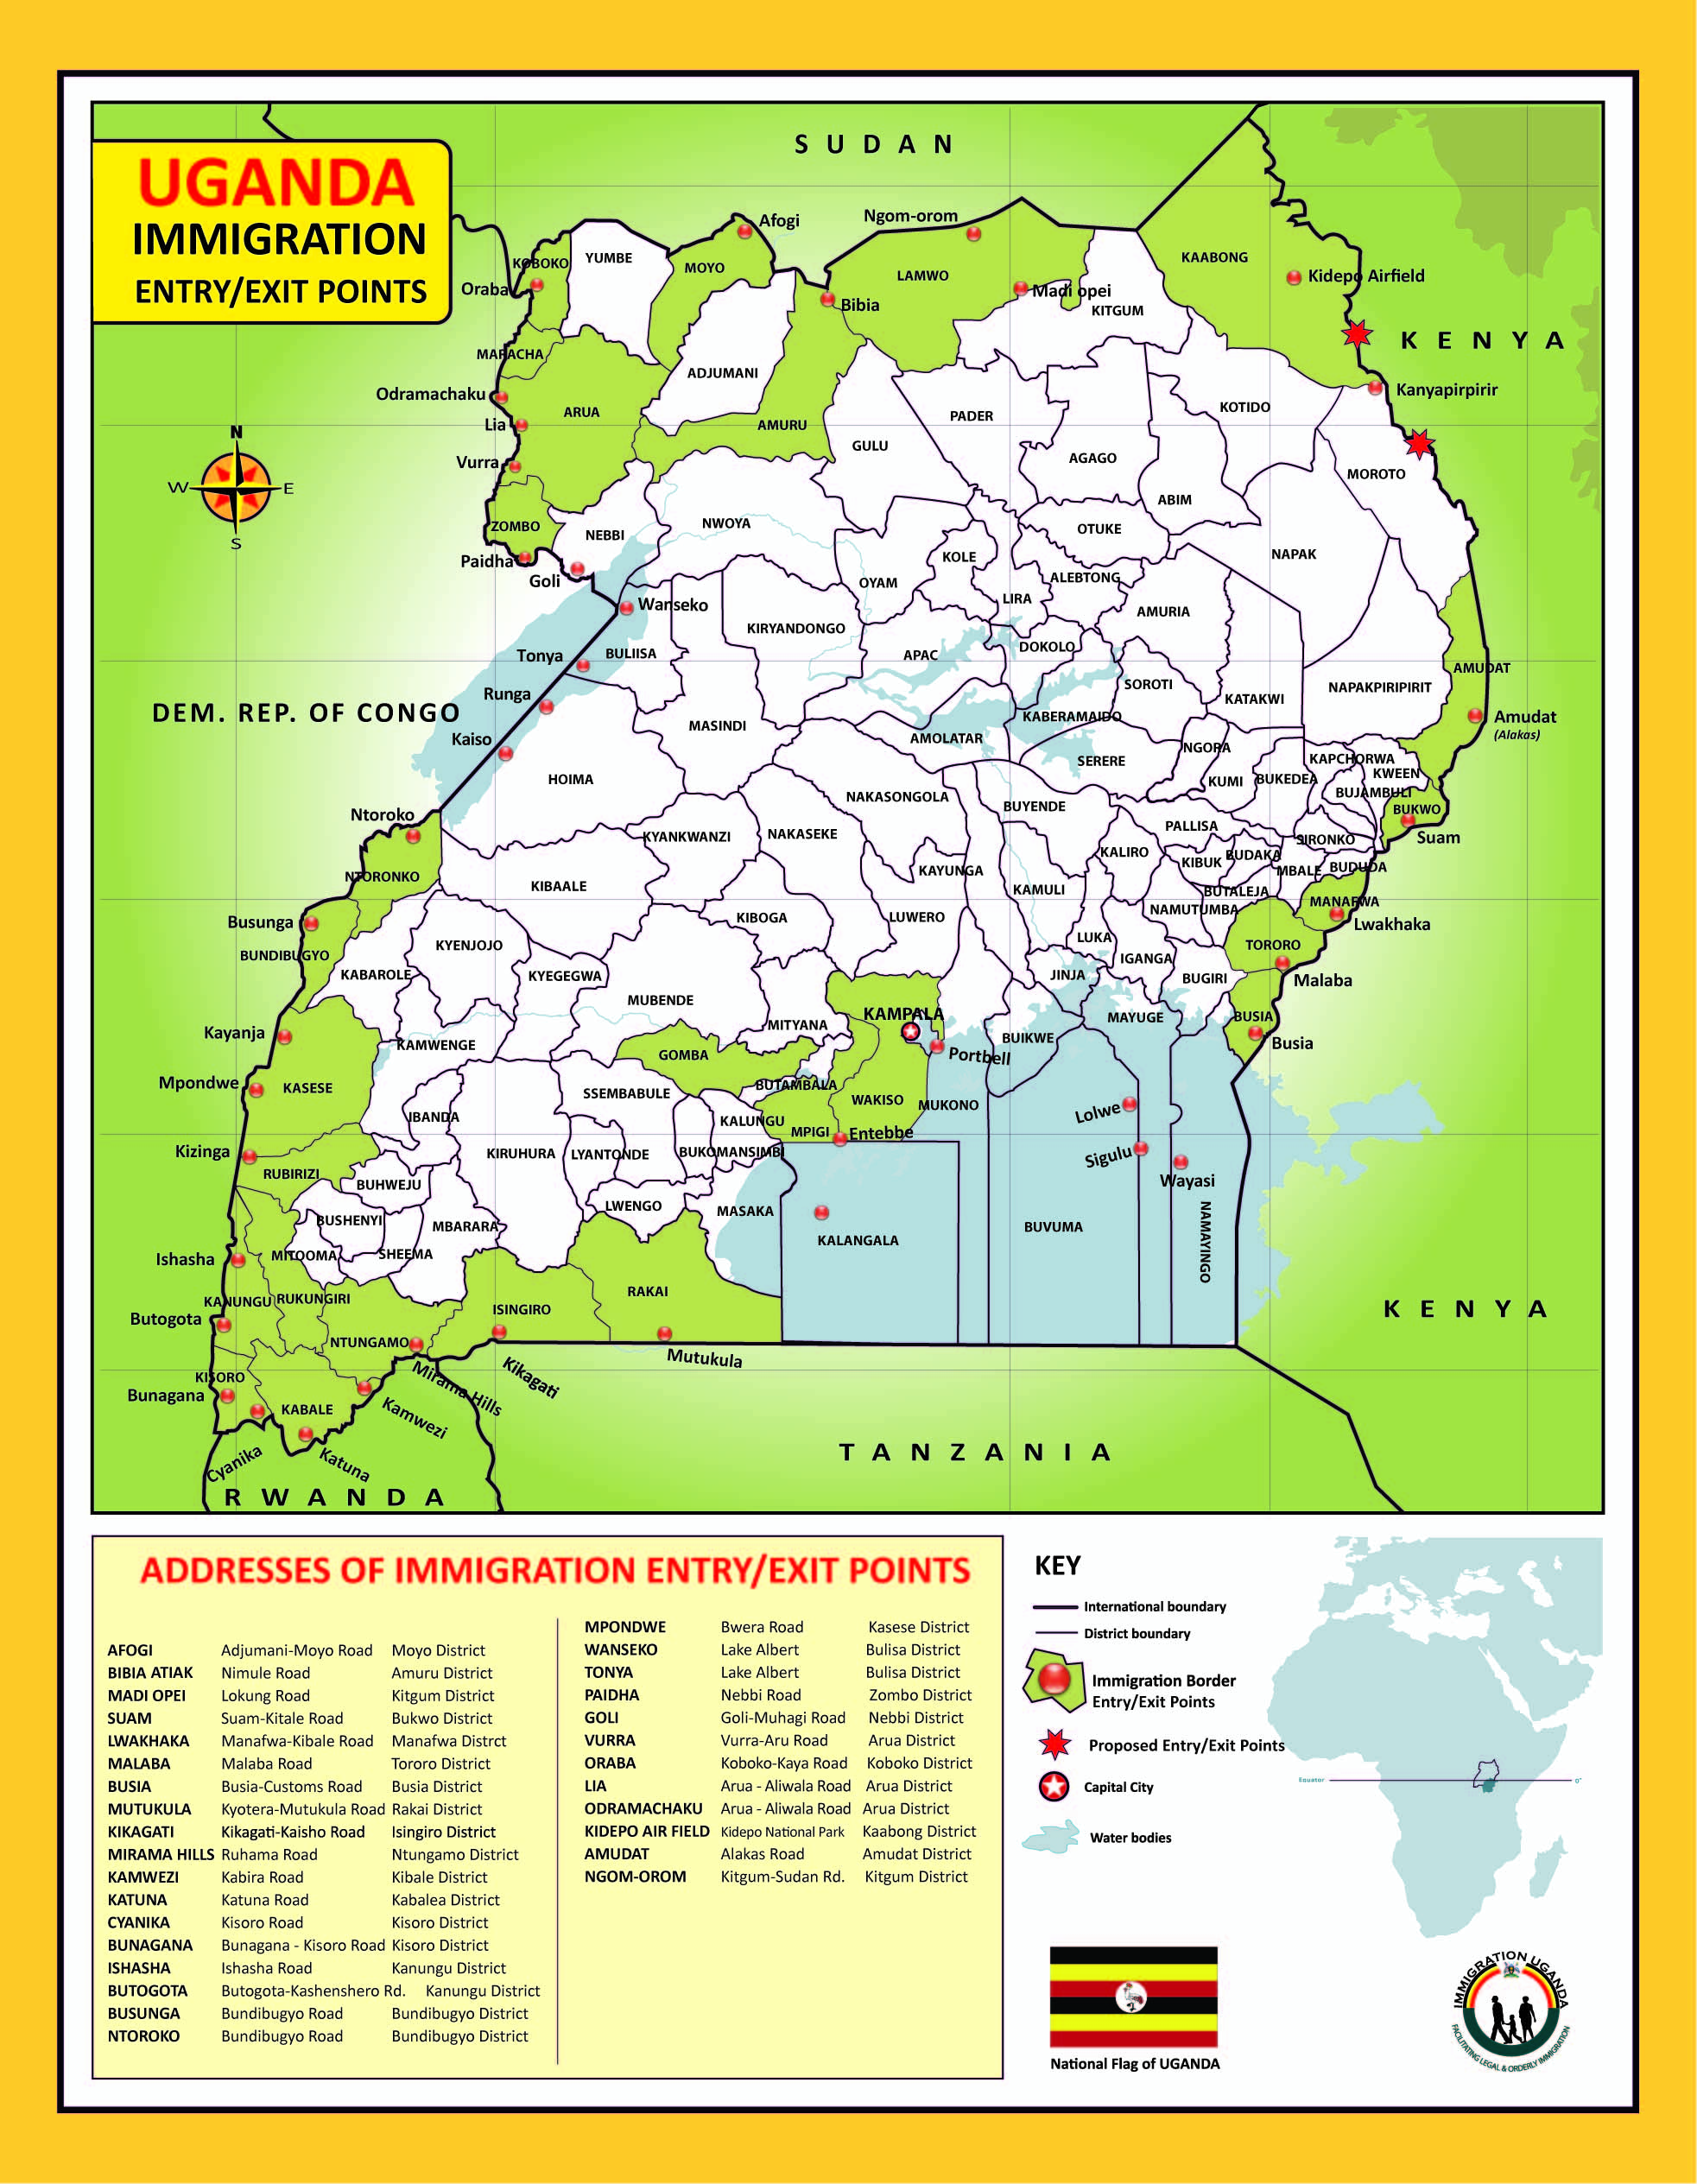 How to travel to Uganda:  Uganda's immigration operates 40 entry/exit points, 13 passport centers and 9 regional offices around the country's borders